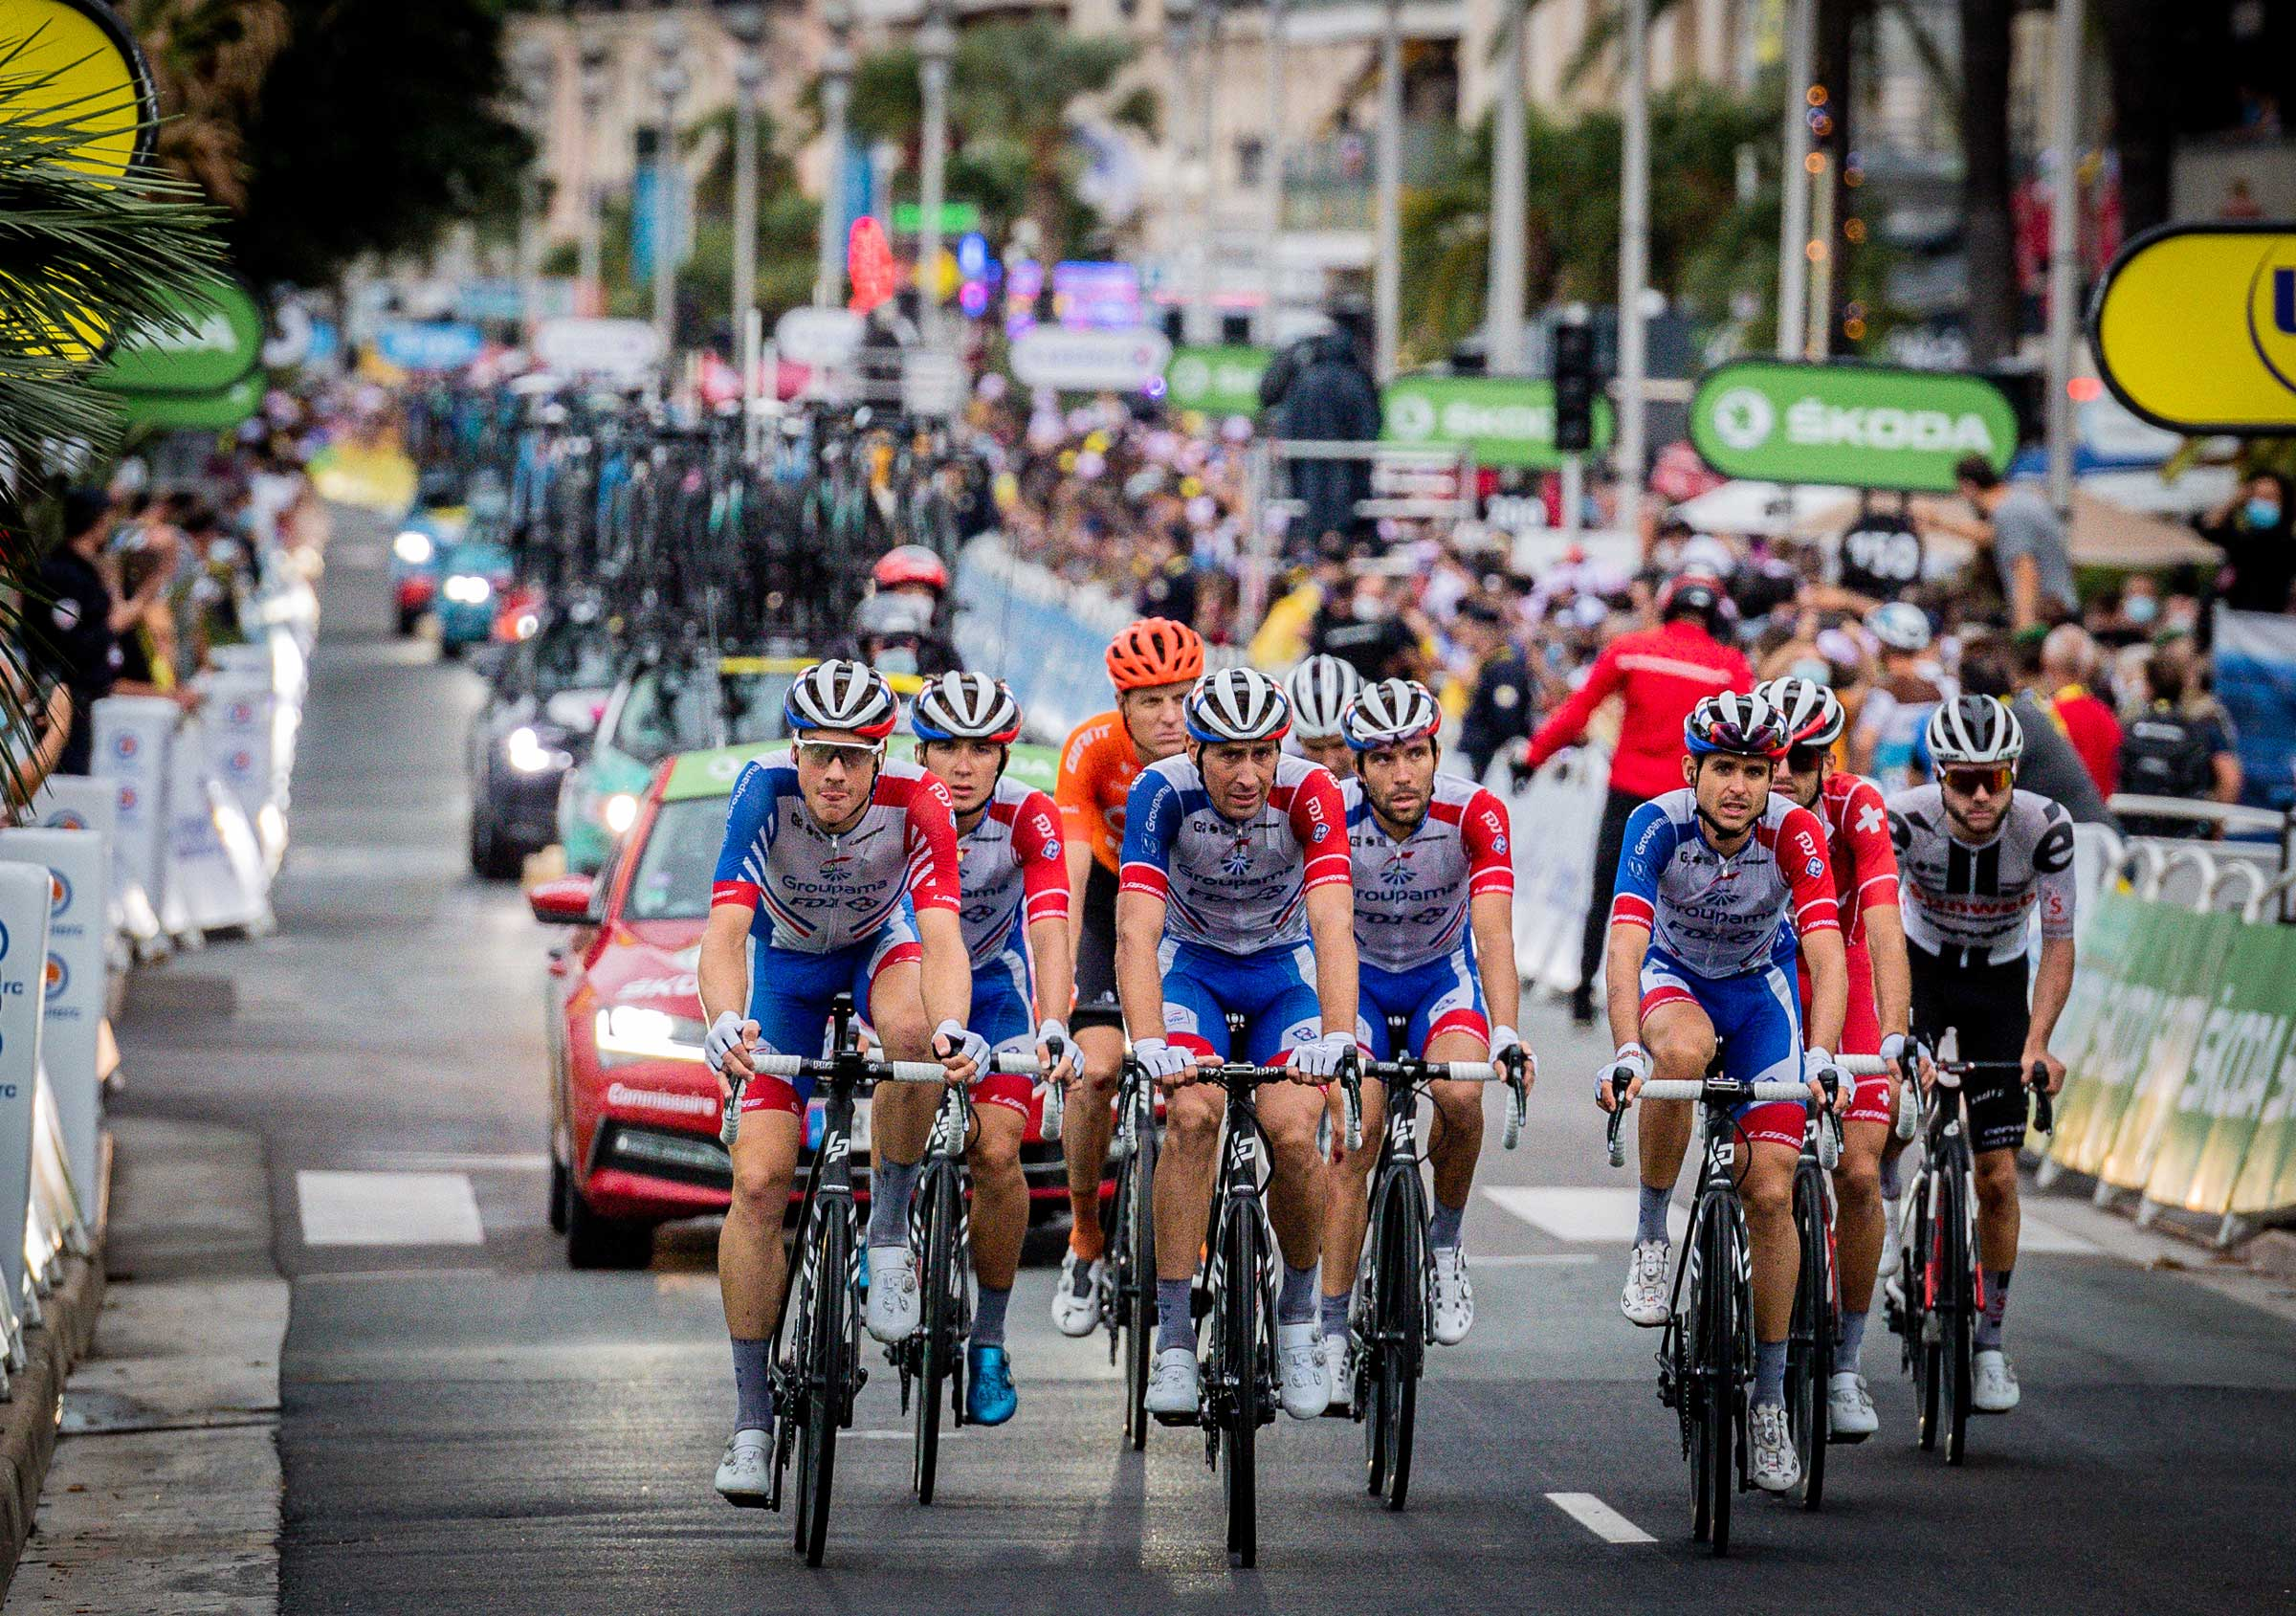 stg01_pinot-groupama-fdj_tdf_2020-(1-of-1)